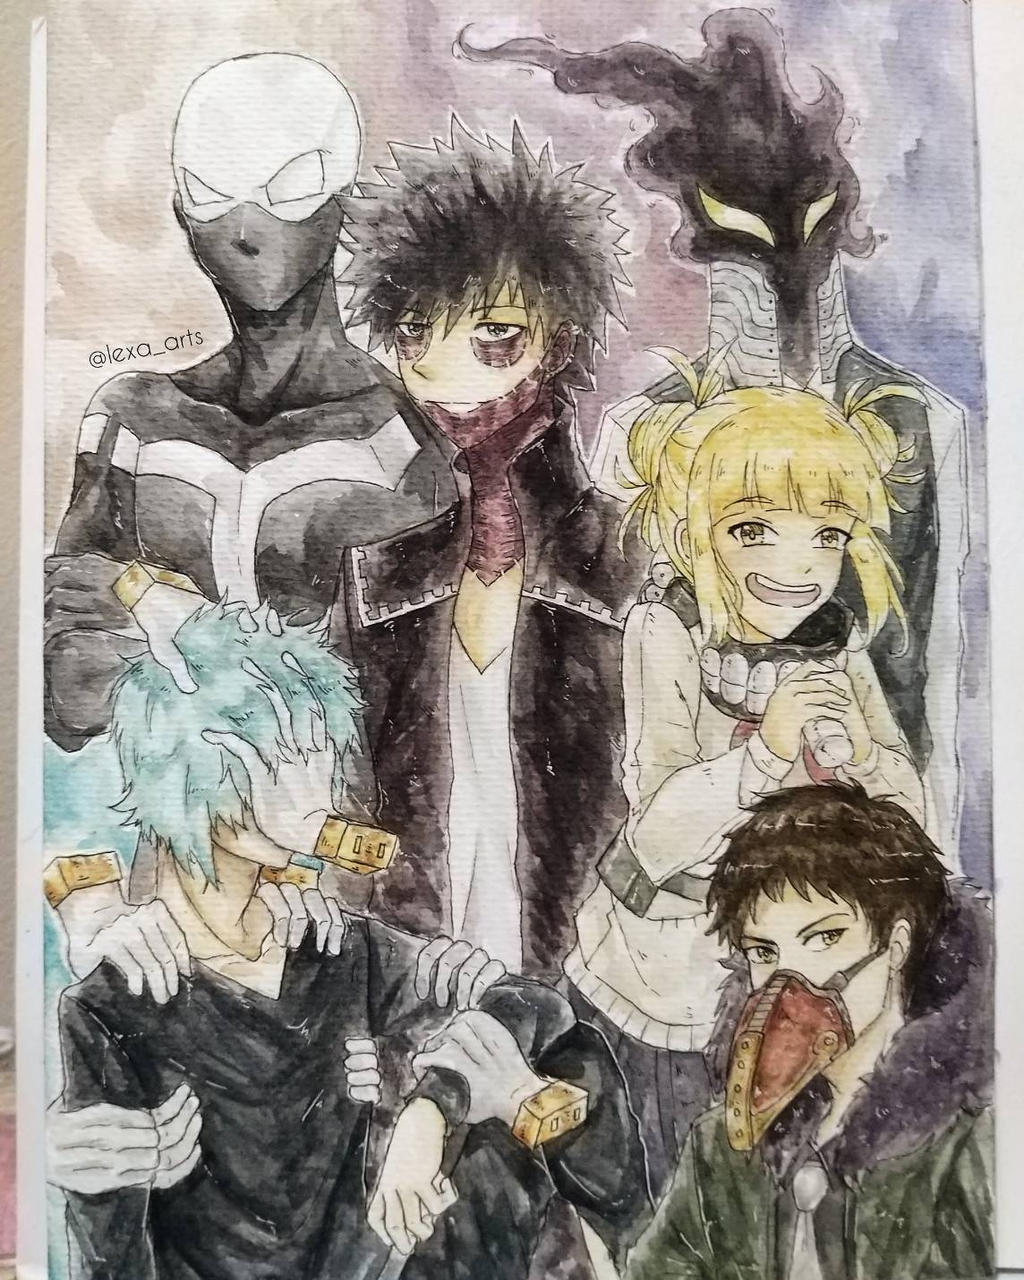 League Of Villains Watercolor By Kukipomme On Deviantart Basically the league of villains have midoriya and he's scary now. league of villains watercolor by